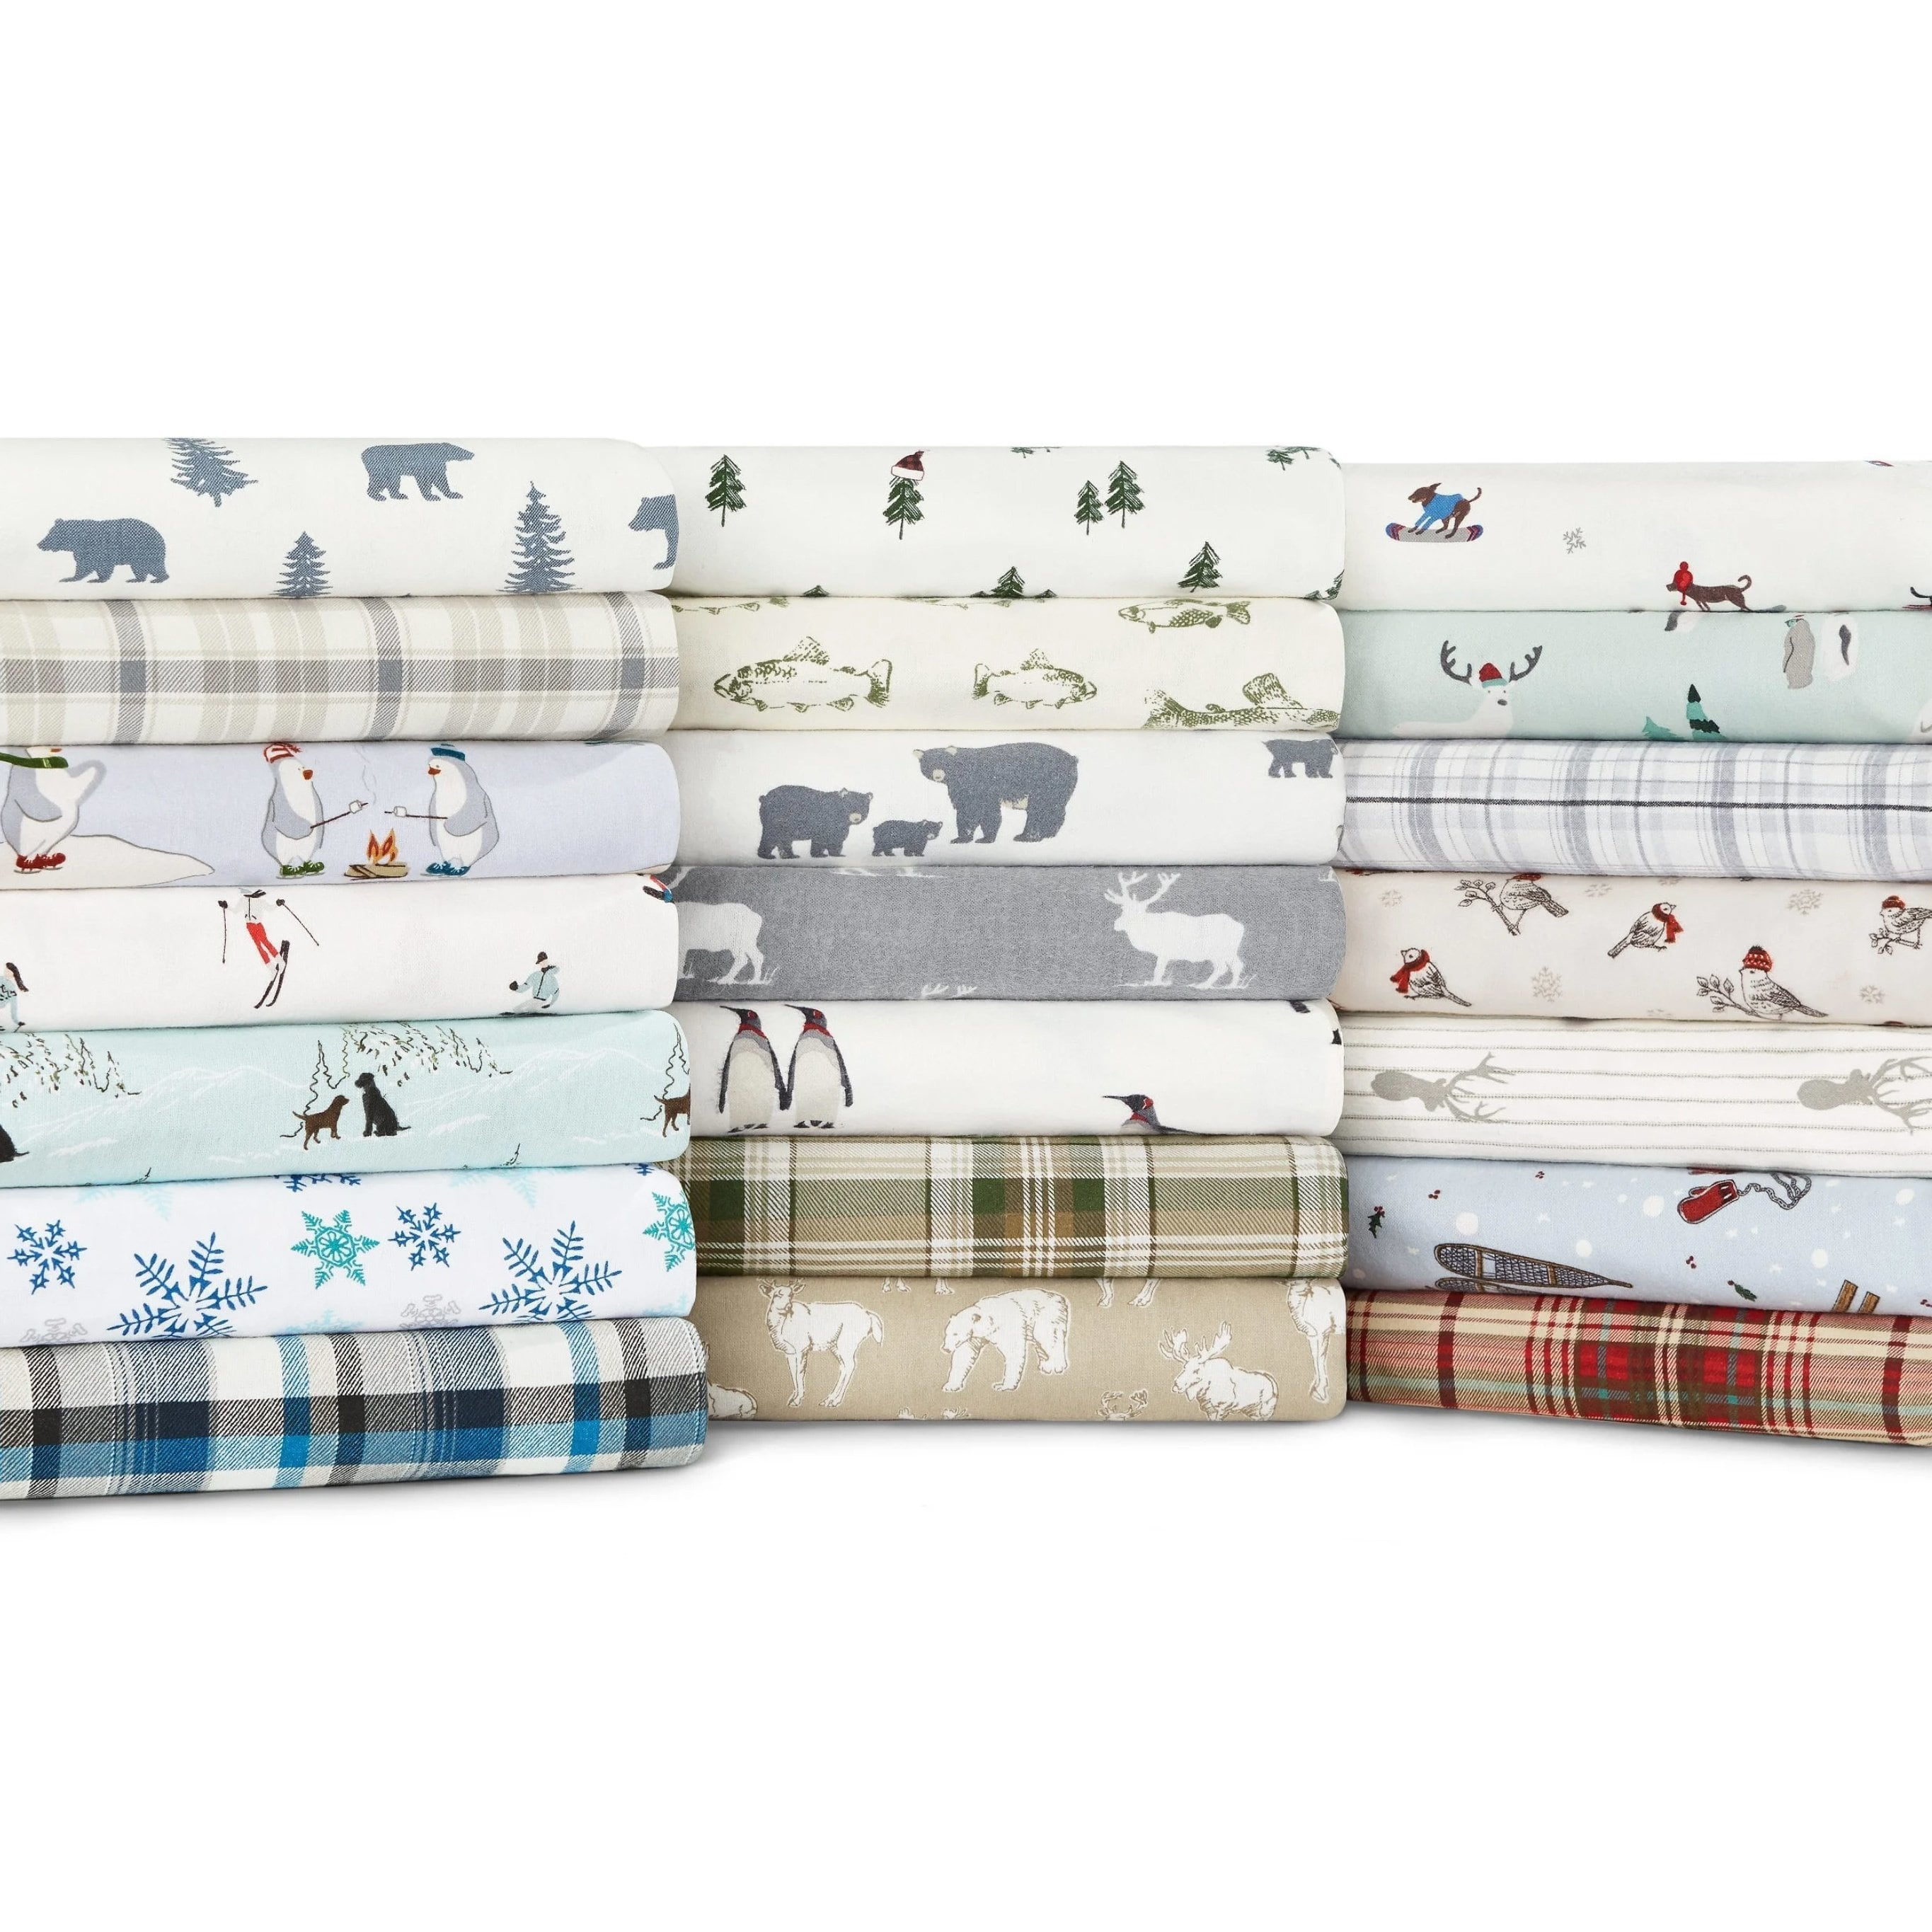 Eddie Bauer Cotton Flannel Sheet Set Walmart Com Walmart Com